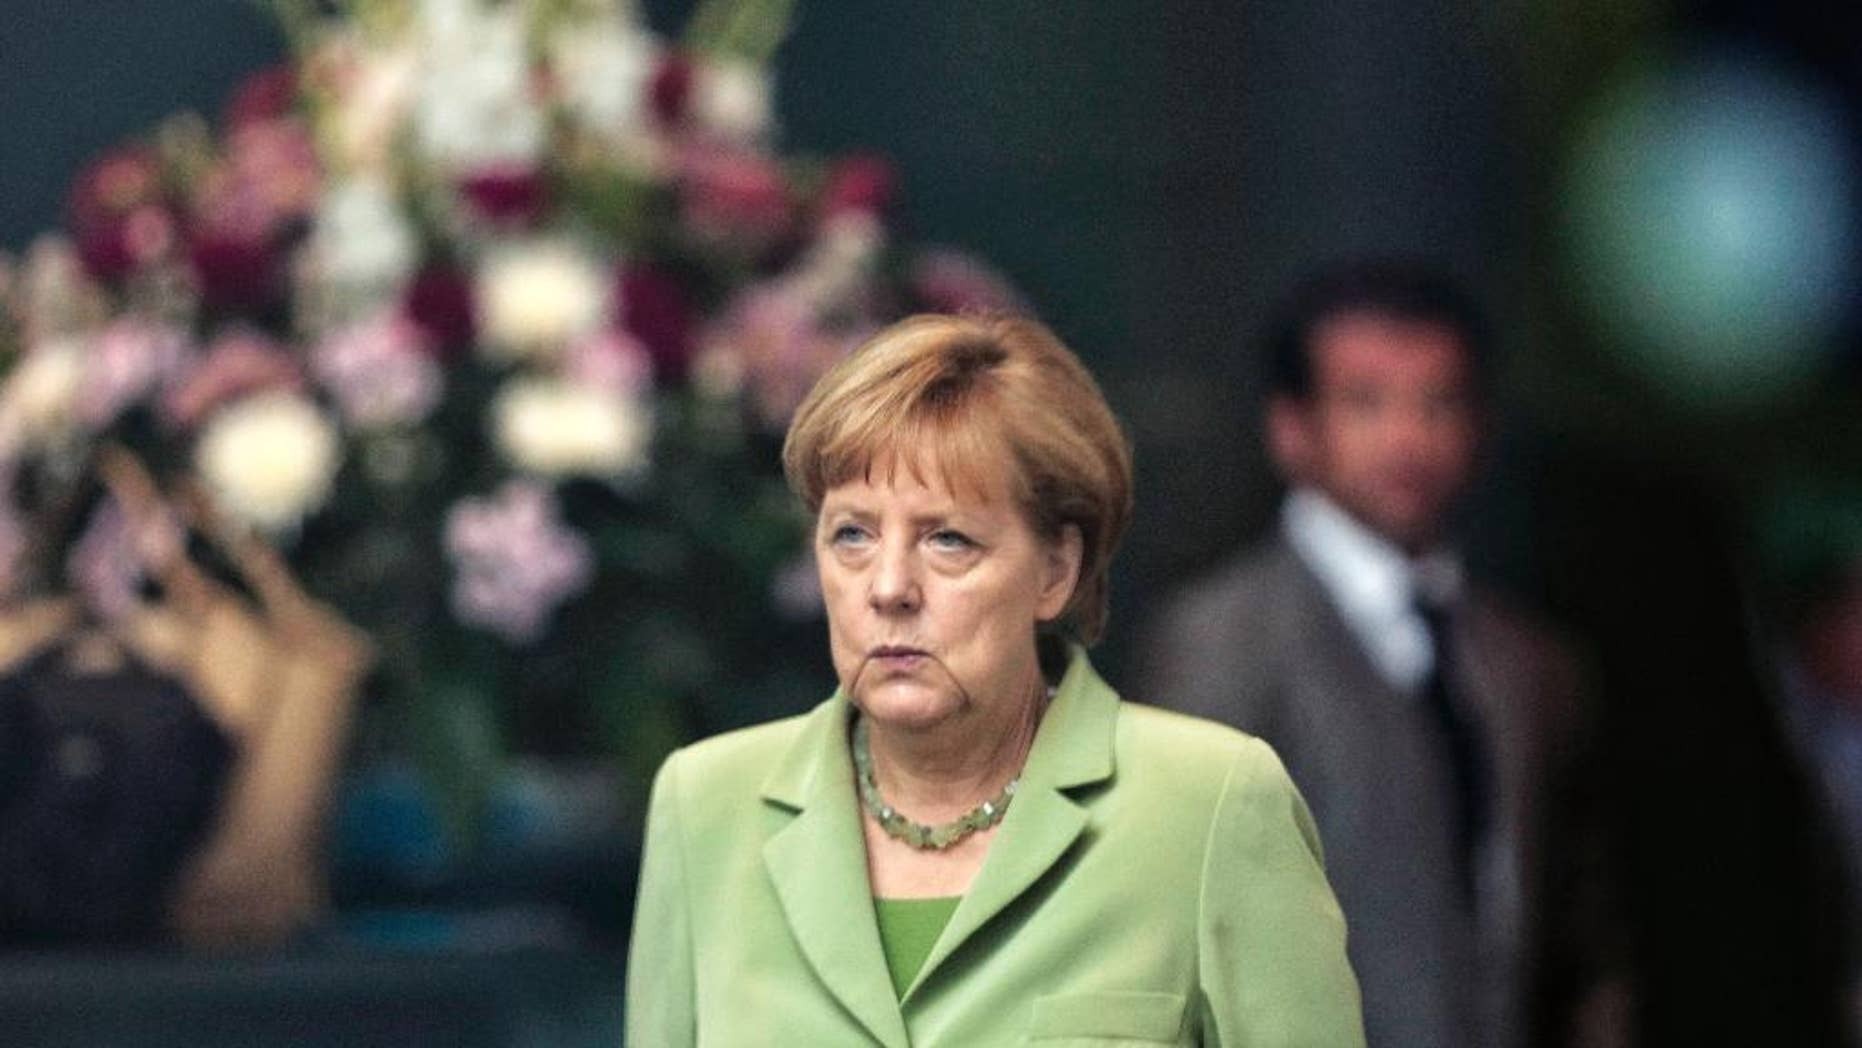 German Chancellor Angela Merkel arrives for the welcoming ceremony of the Prime Minister of Serbia Aleksandar Vucic for talks at the chancellery in Berlin, Wednesday, June 11, 2014. (AP Photo/Markus Schreiber)